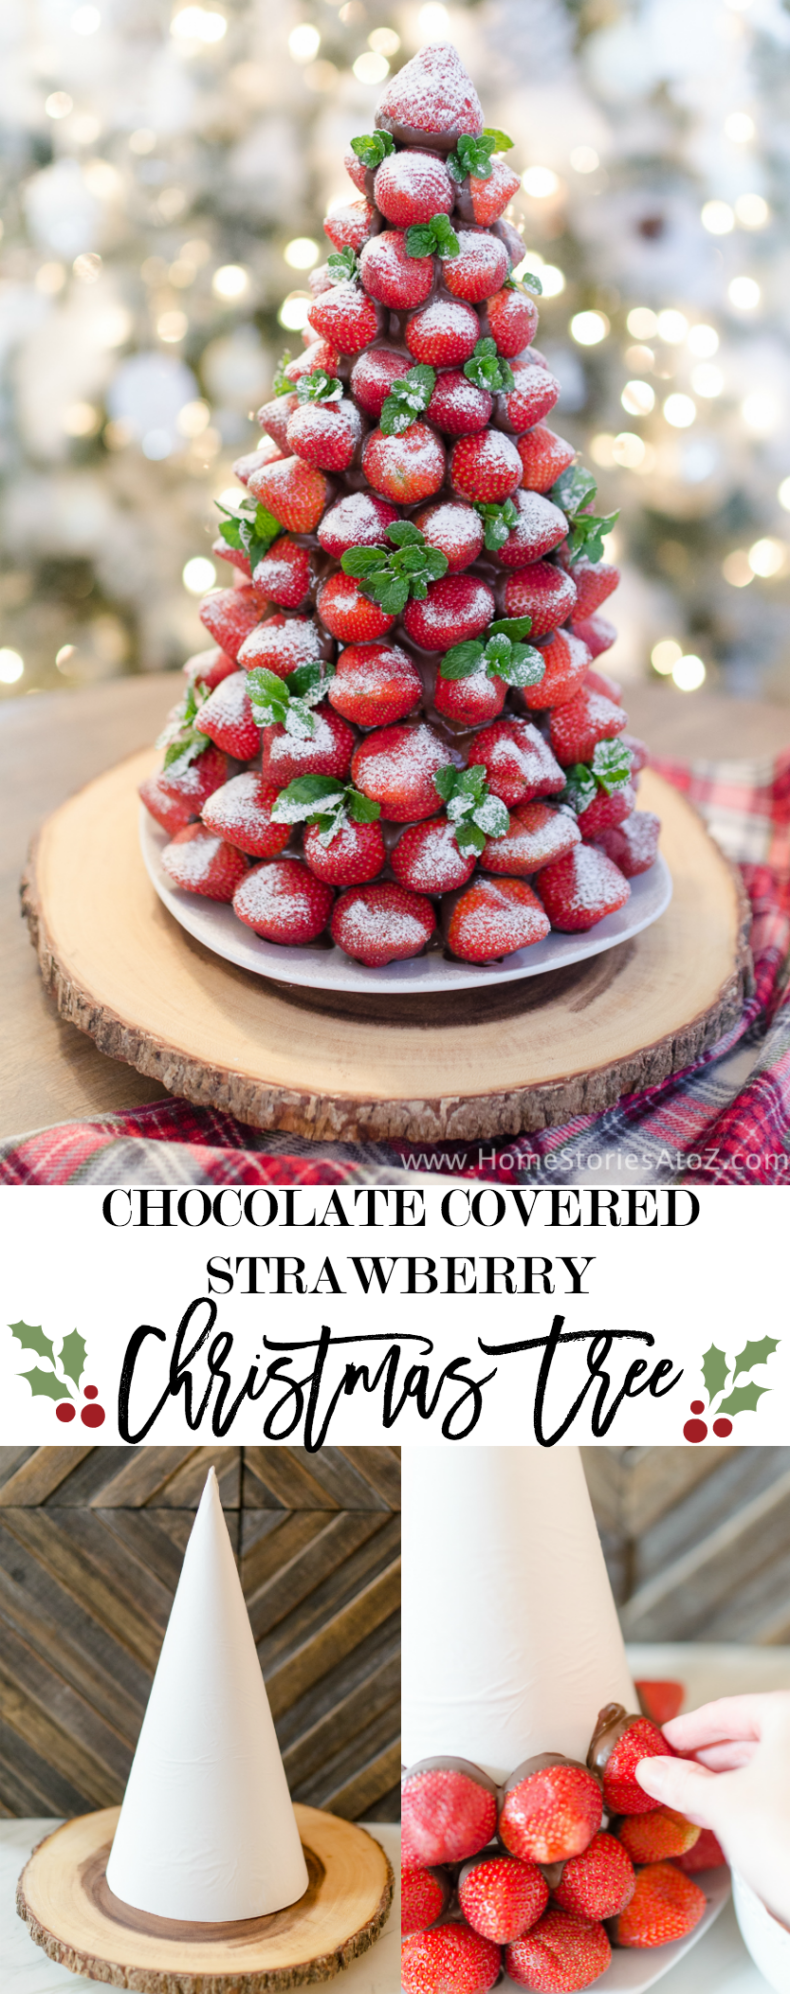 Chocolate Covered Christmas Tree by Home Stories A to Z